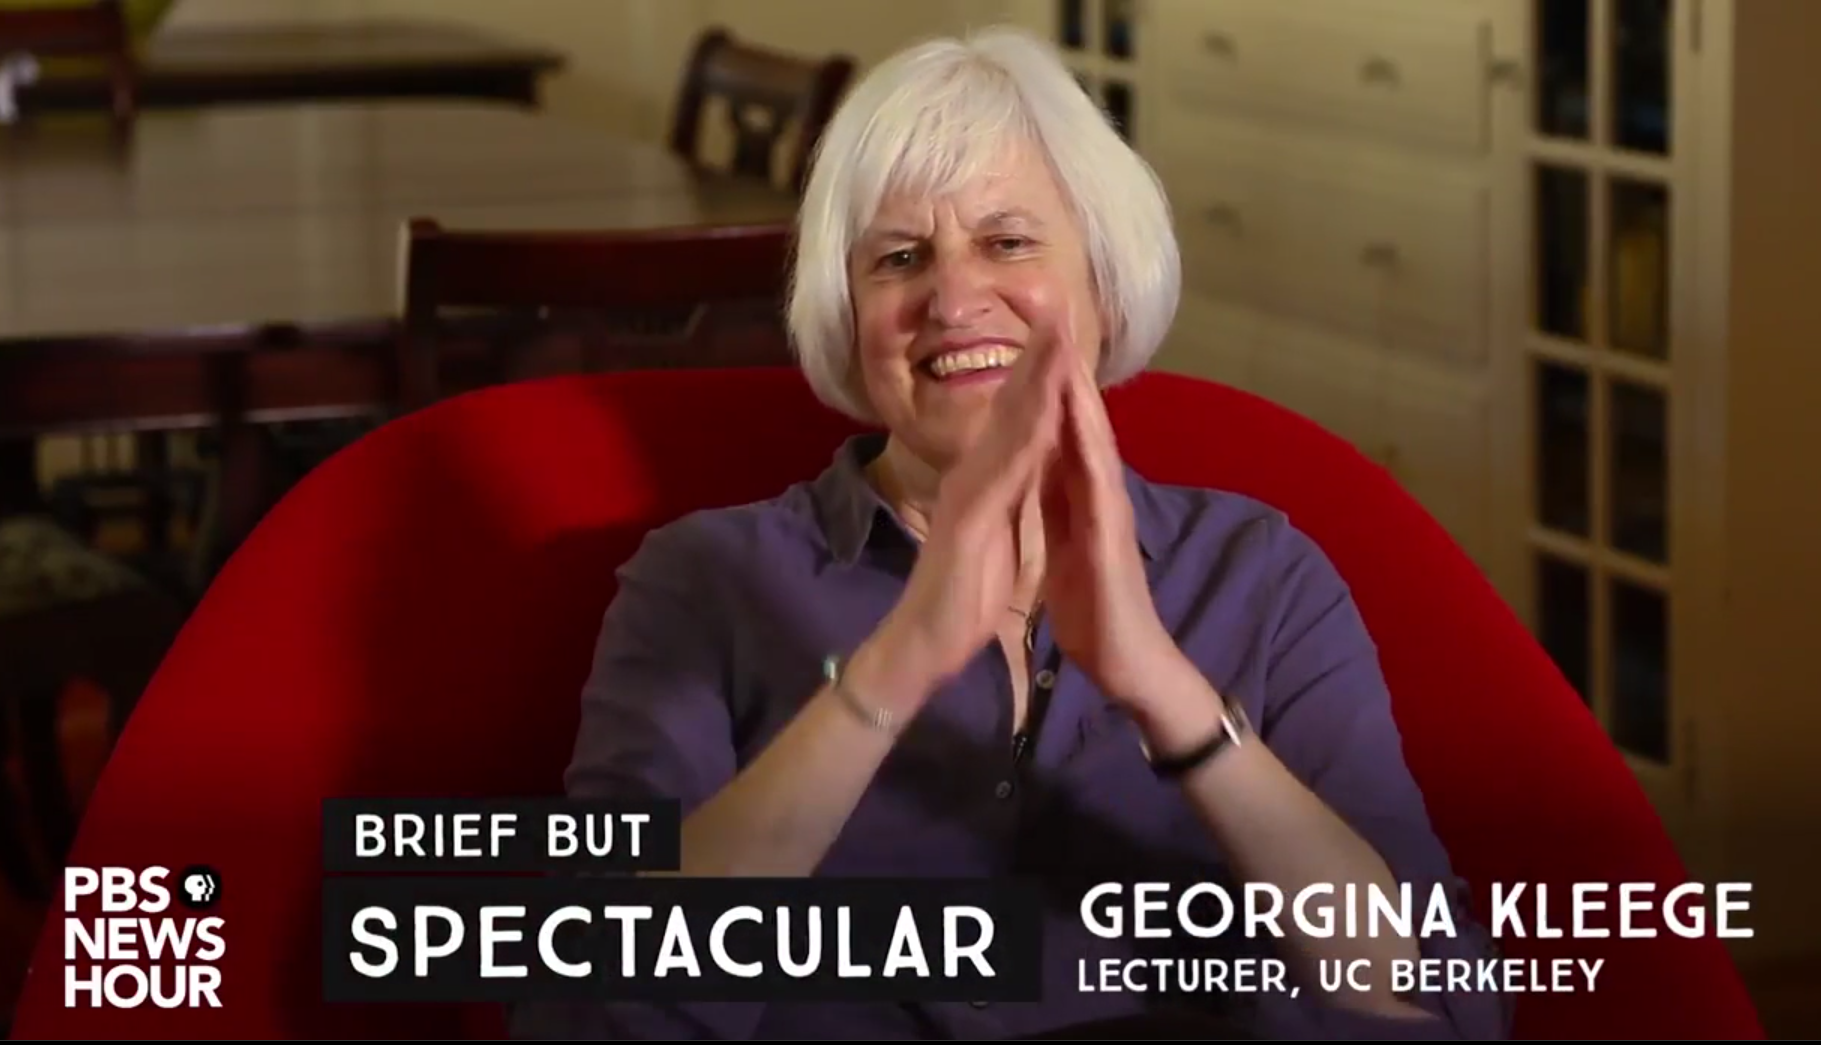 Image grab from PBS interview showing Georgina Kleege